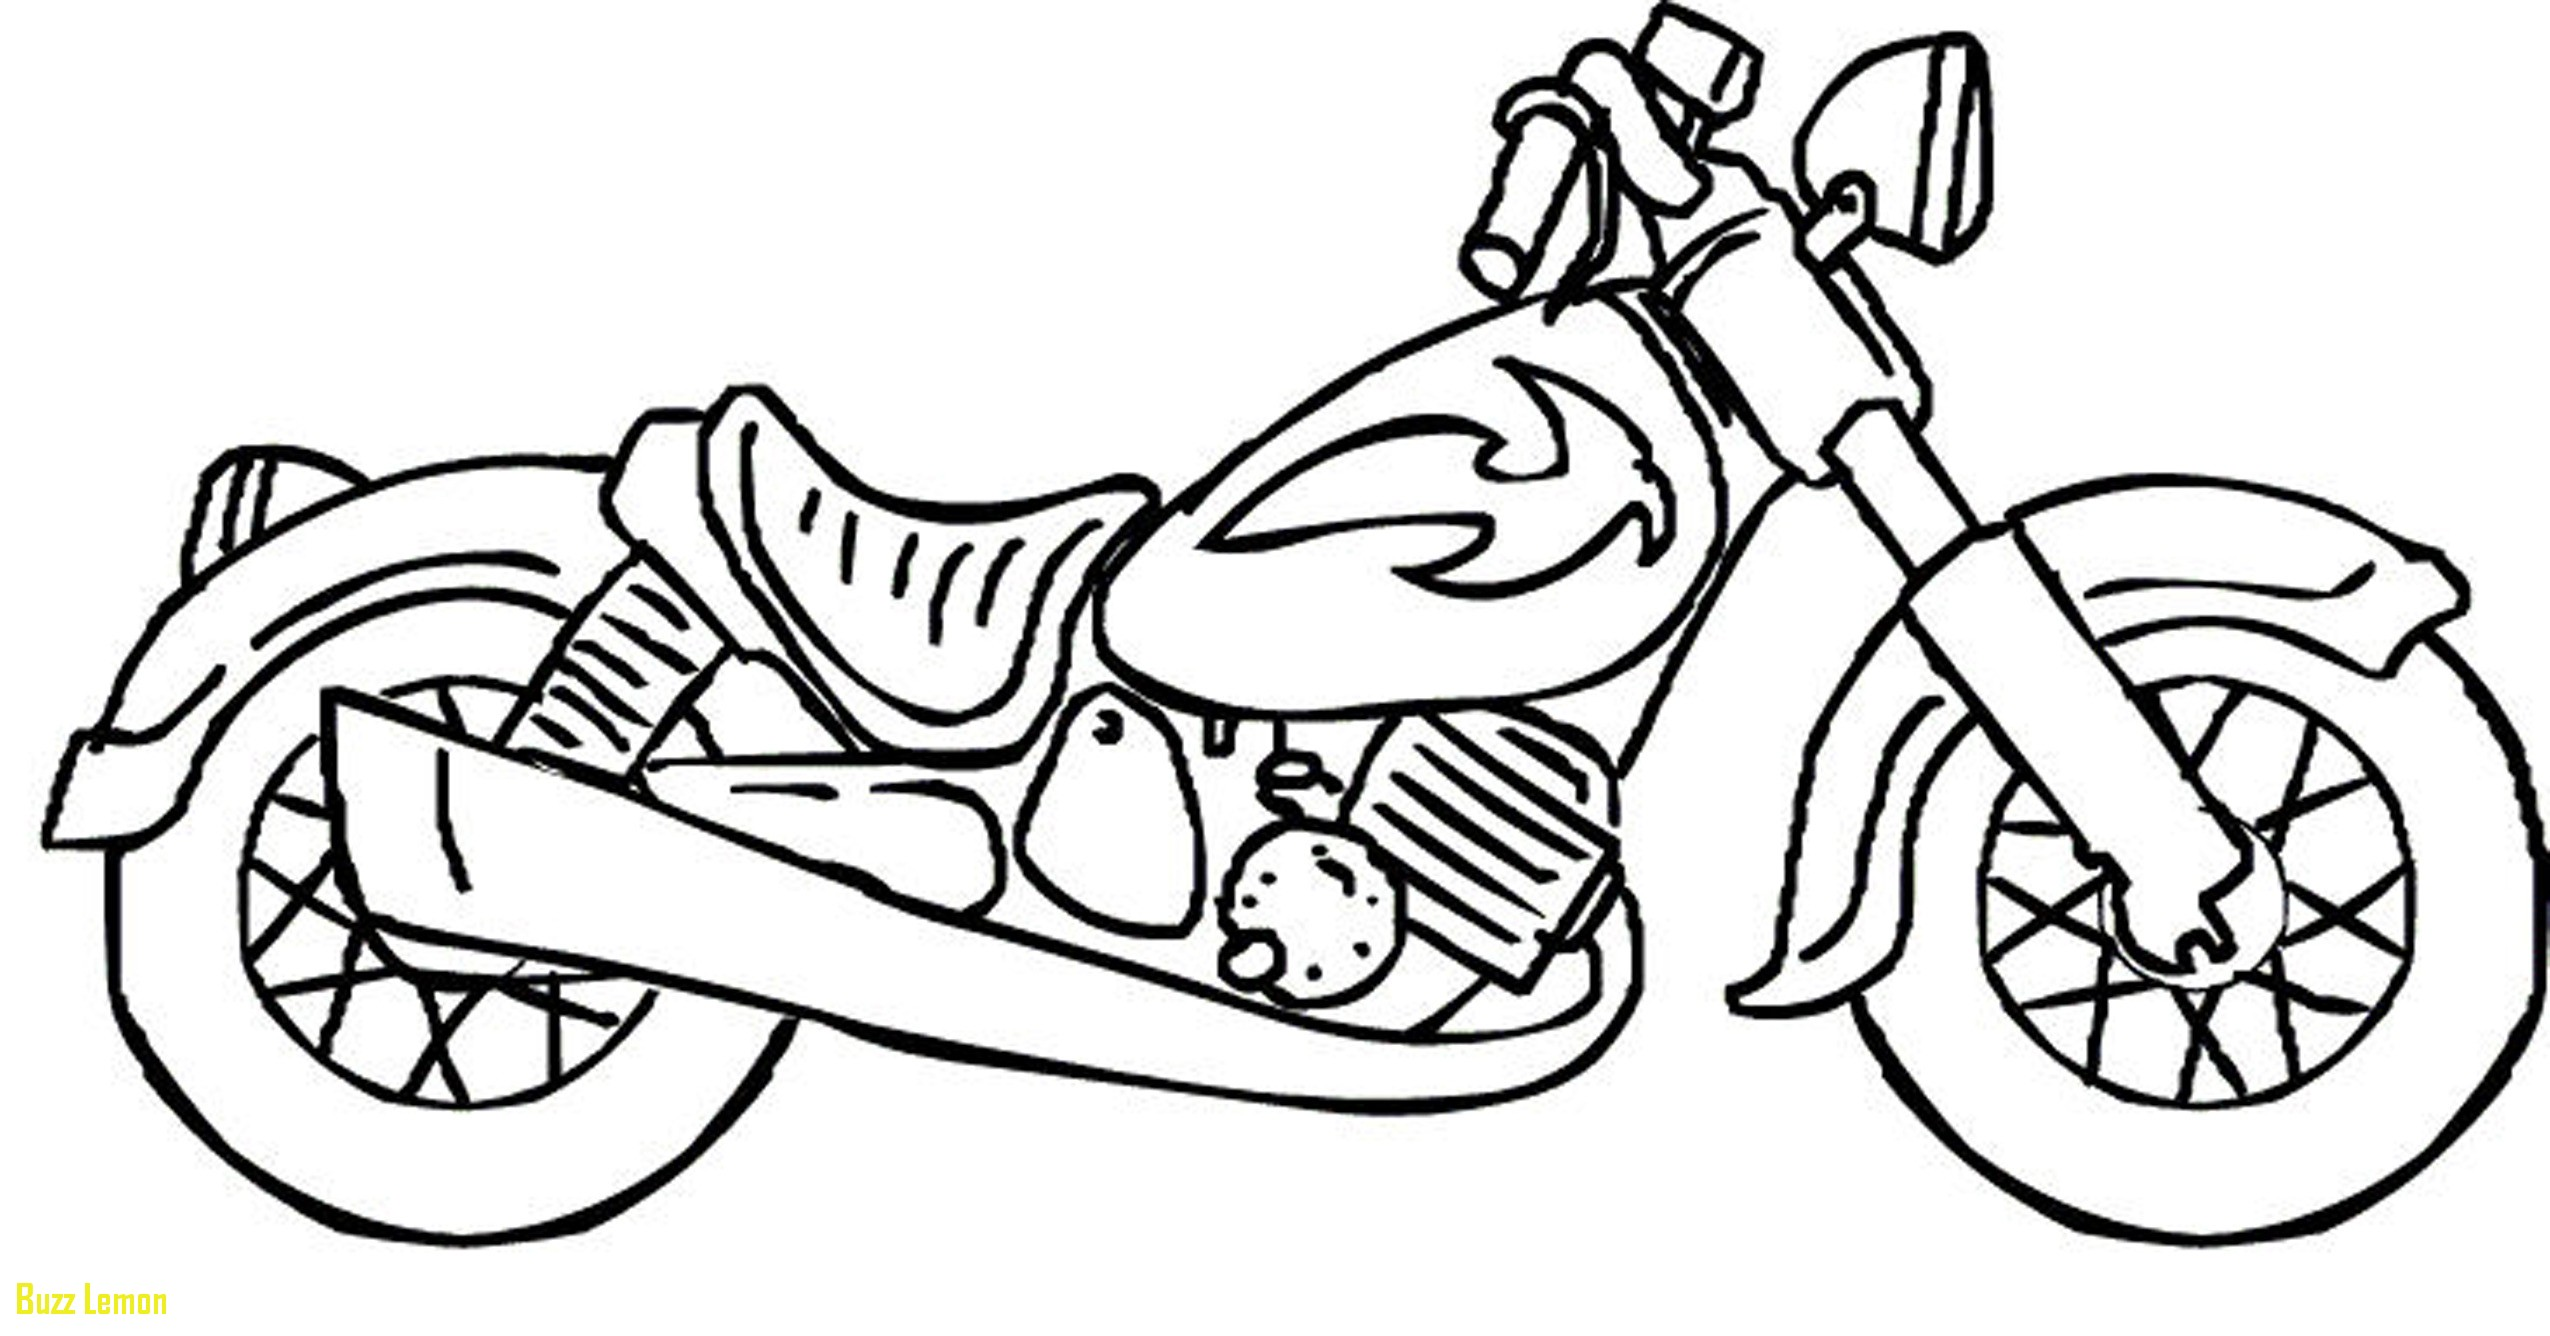 2550x1336 Last Chance Coloring Pages For Guys Book Boys Unique Best